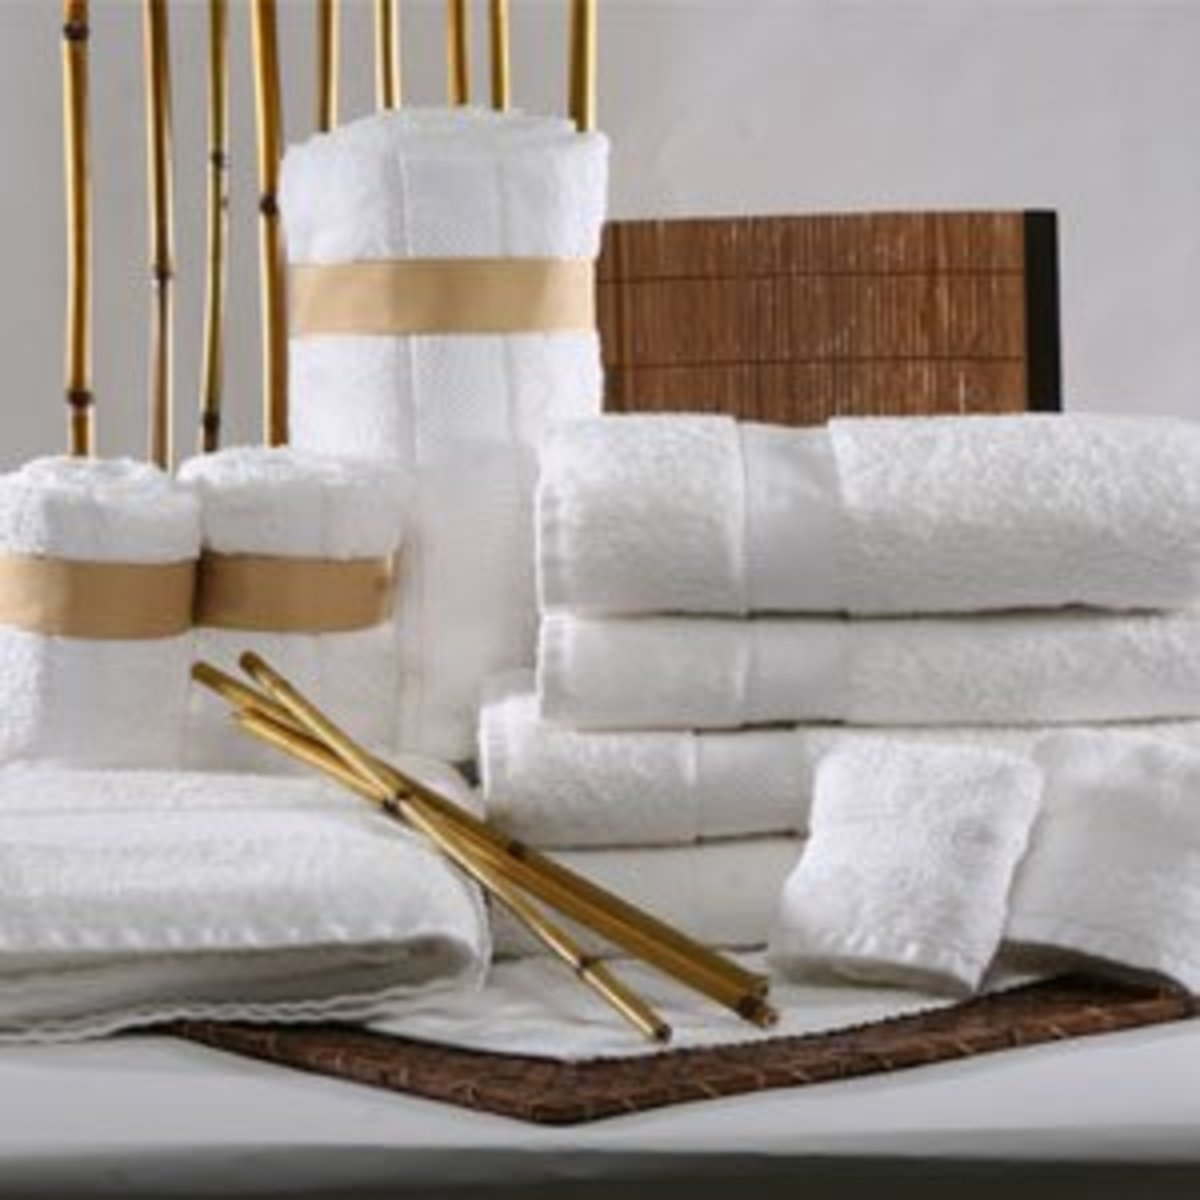 Best Luxury Bath Towels 2014 Cotton Vs. Bamboo